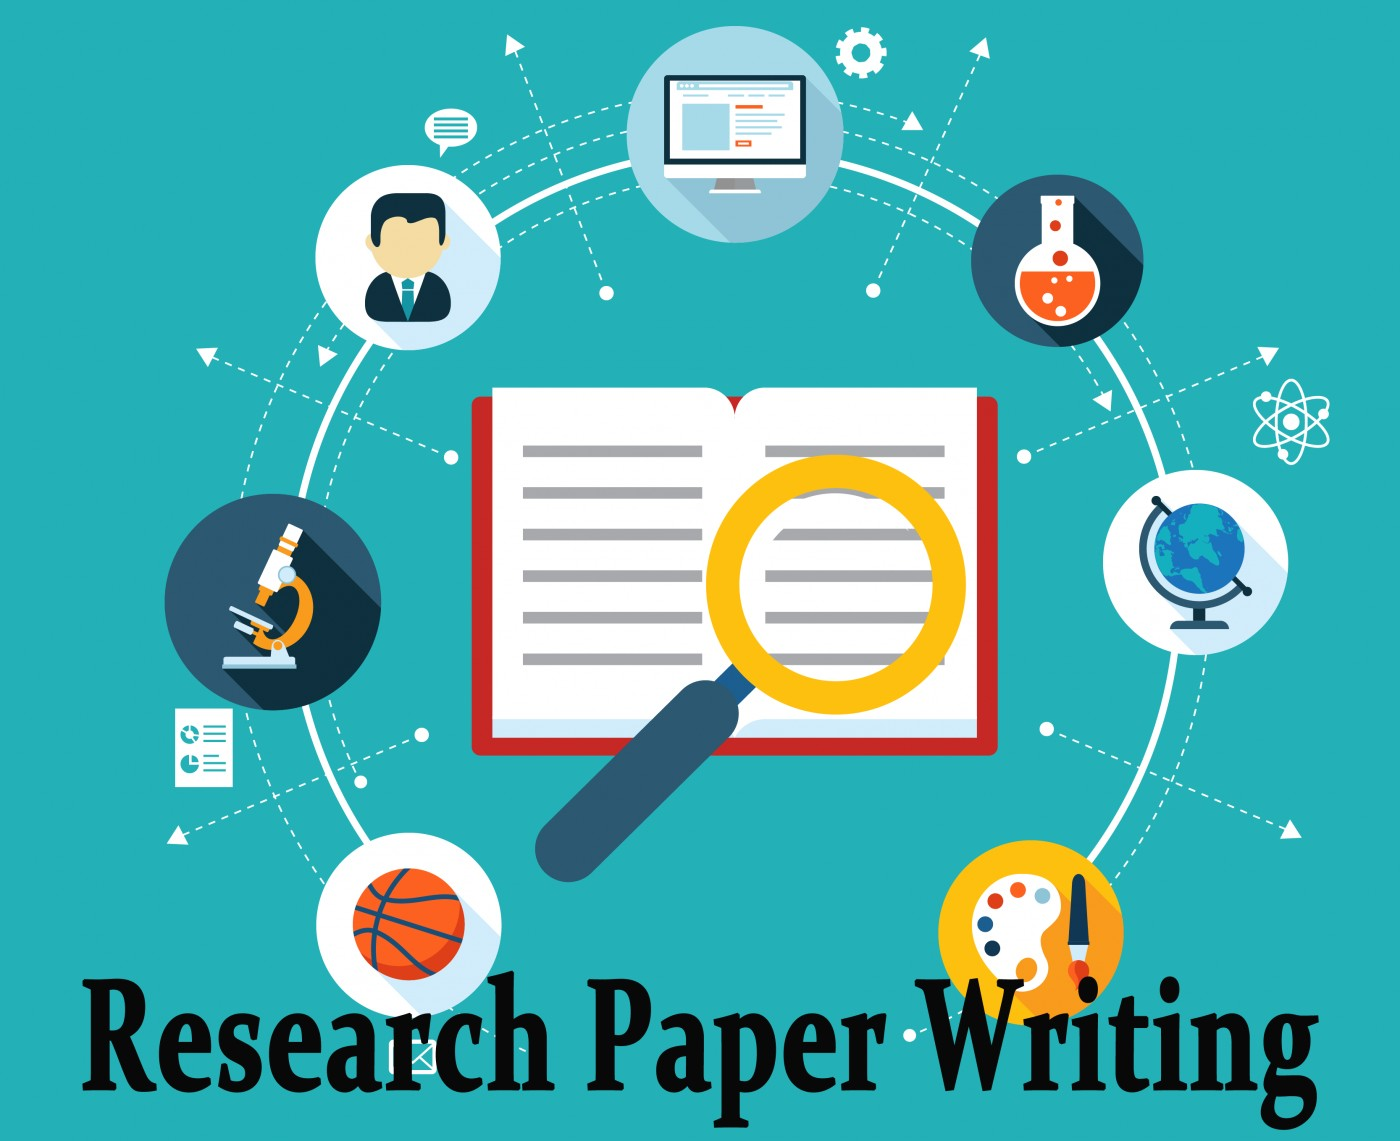 014 Write Researchs 503 Effective Research Writing Frightening Papers How To A Paper Introduction Apa Service In Latex 1400